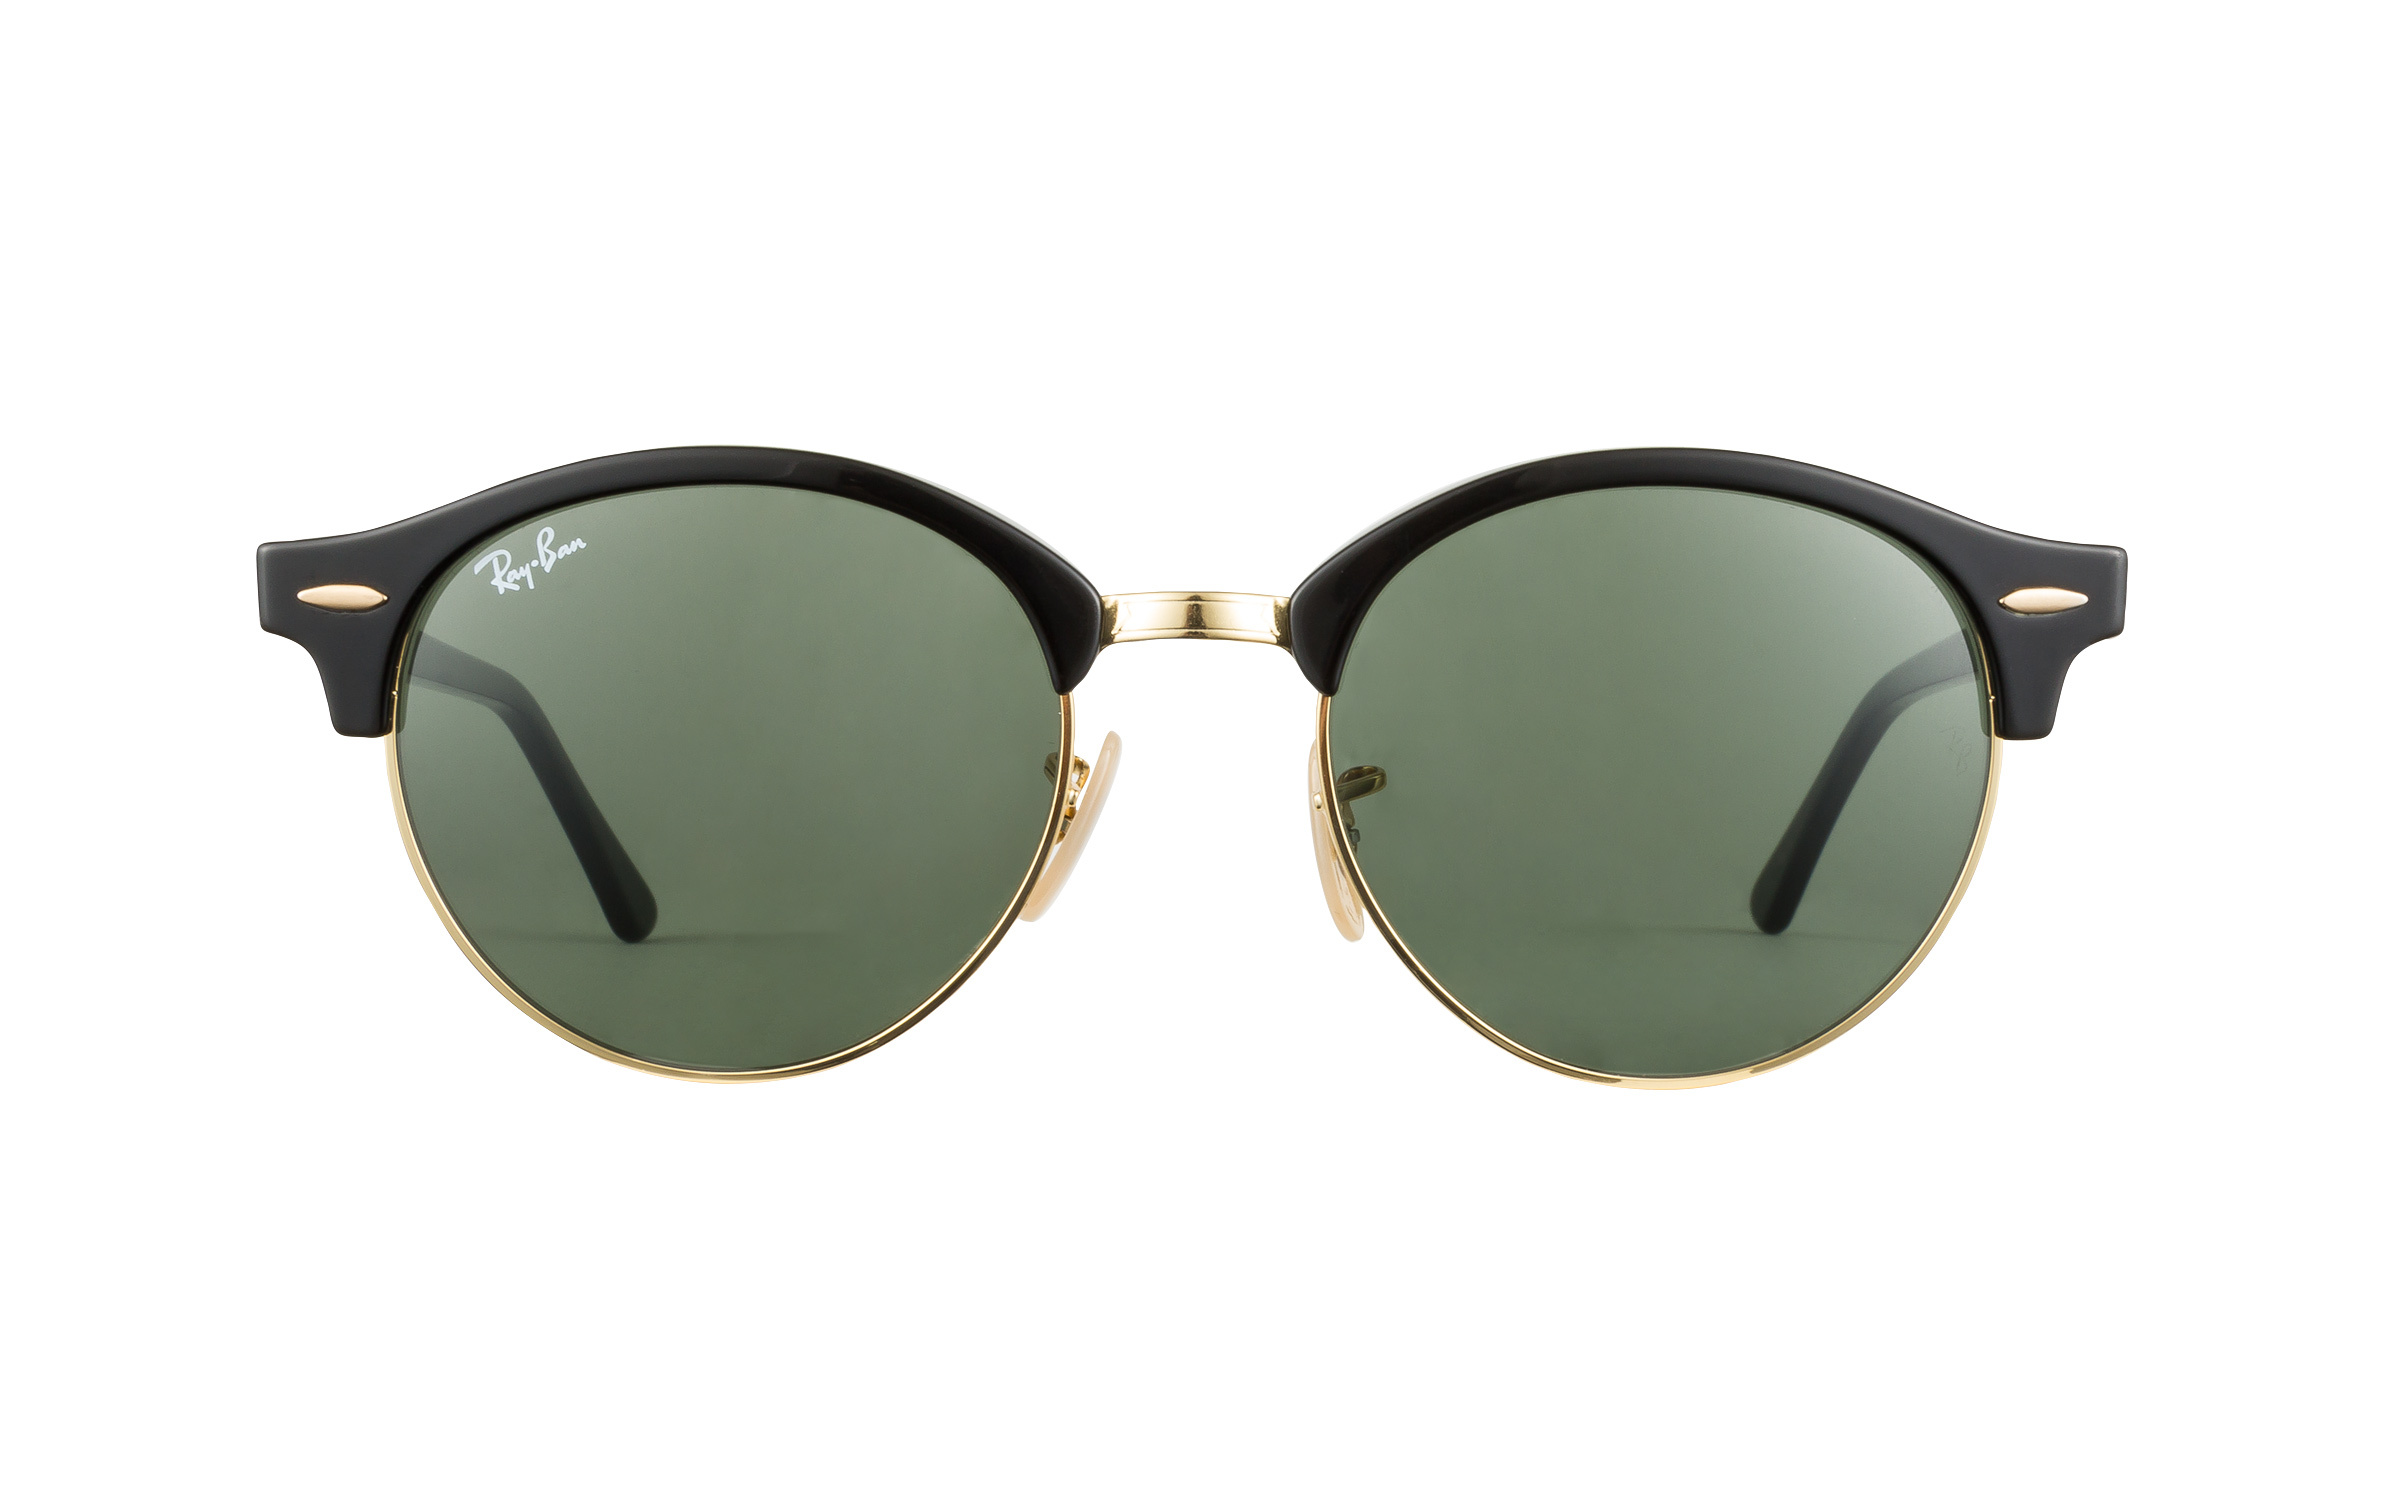 Ray-Ban RB4246 901 51 Sunglasses in Black/Gold - Online Coastal